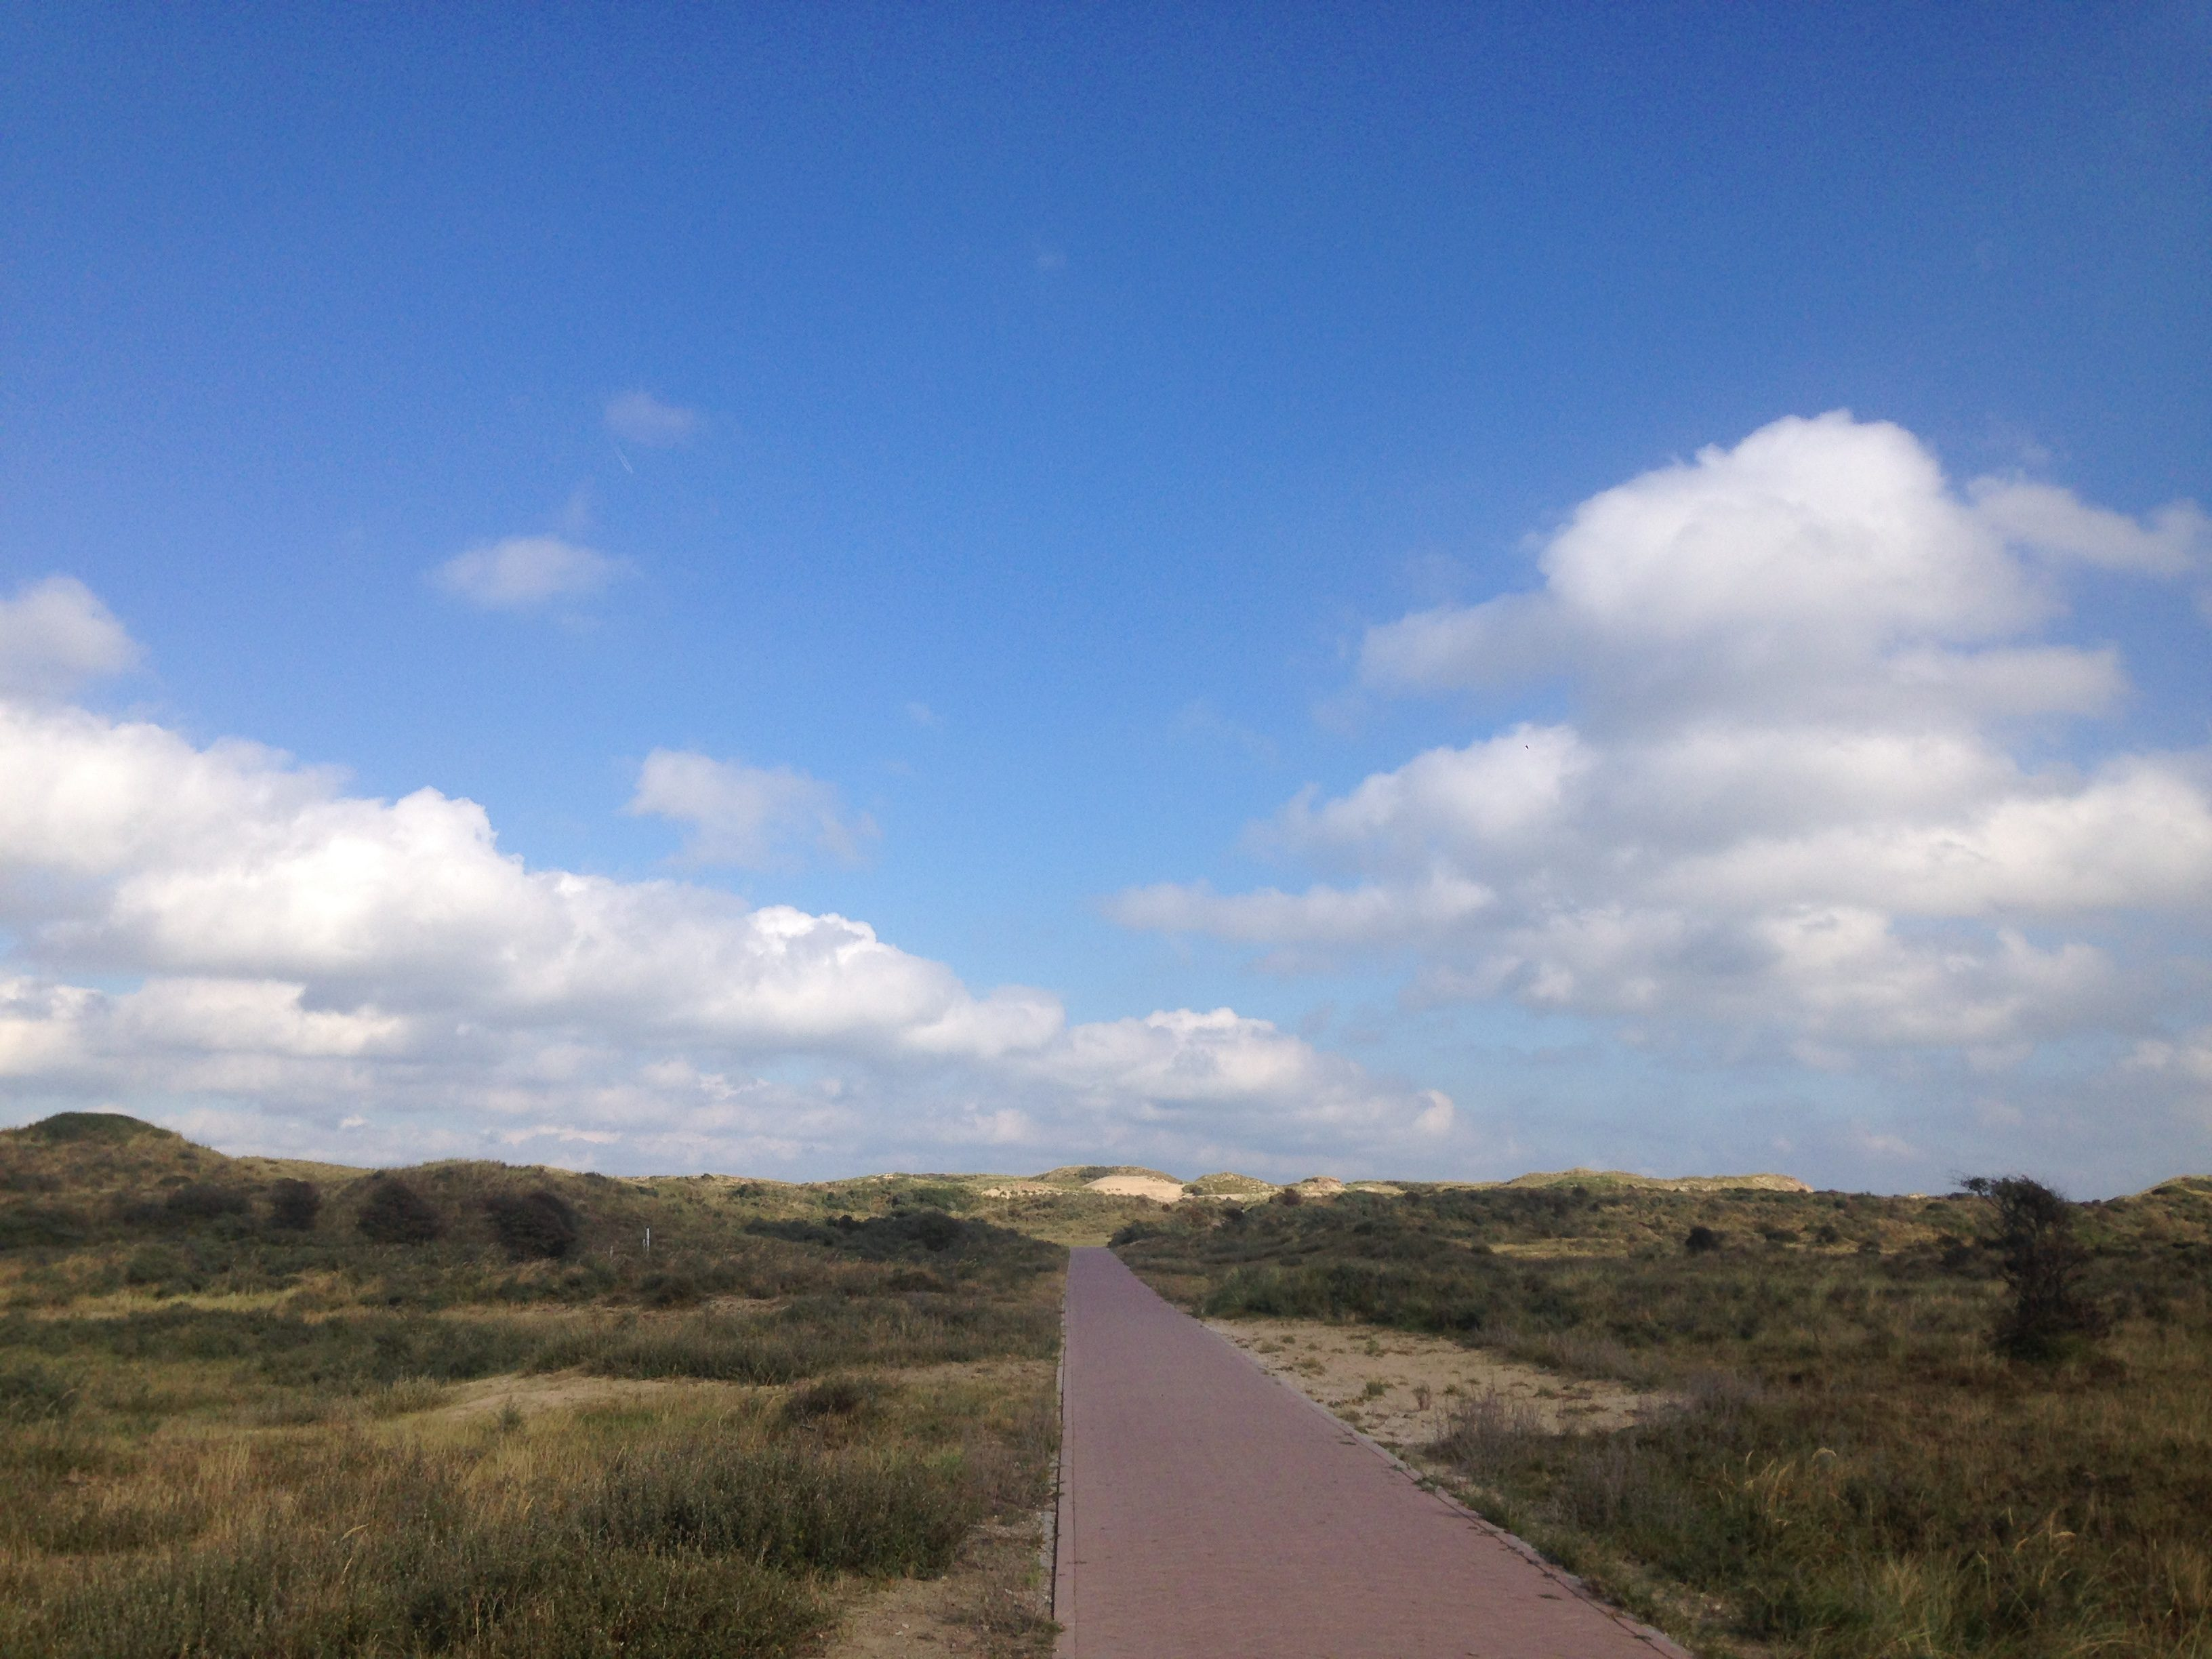 Cycle path to the beach